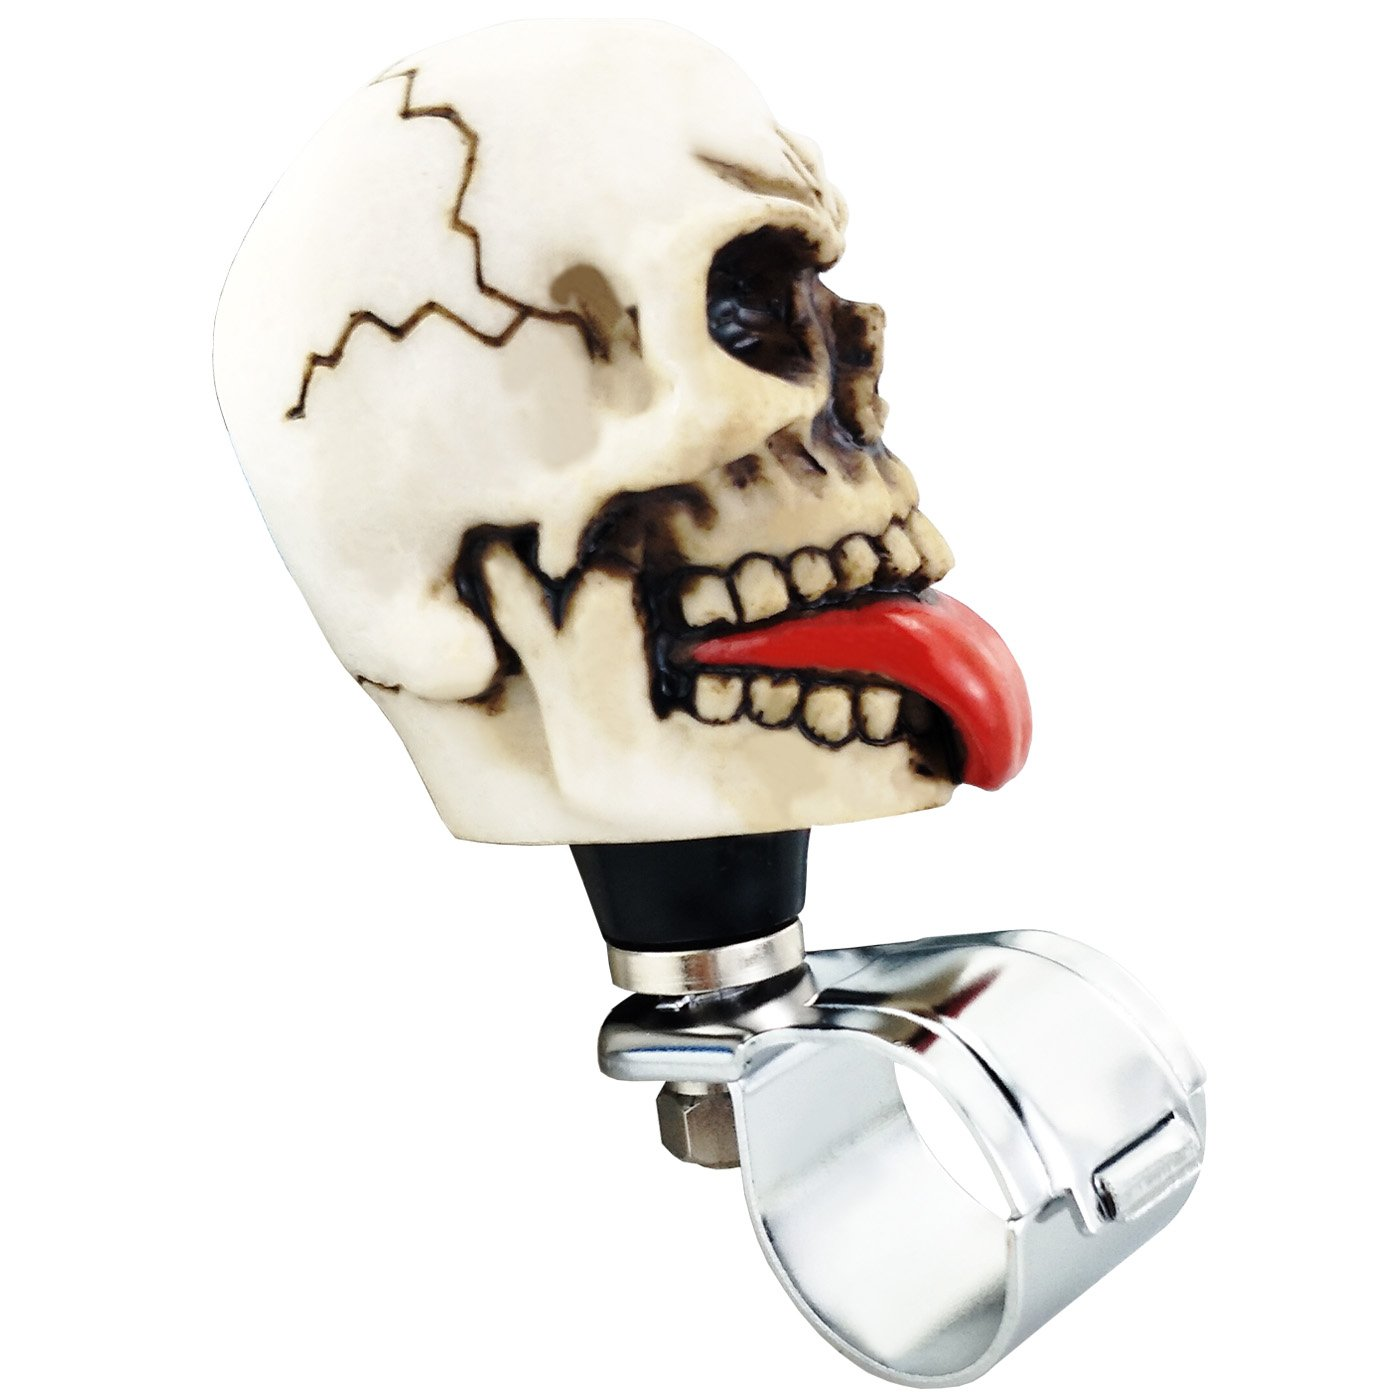 Lensuntom LUNSOM Universal Auto Fit Power Steering Wheel Spinner Handle Necking Knob for Cars Turn Knobs Easy Turns White Skull with Red Tongue